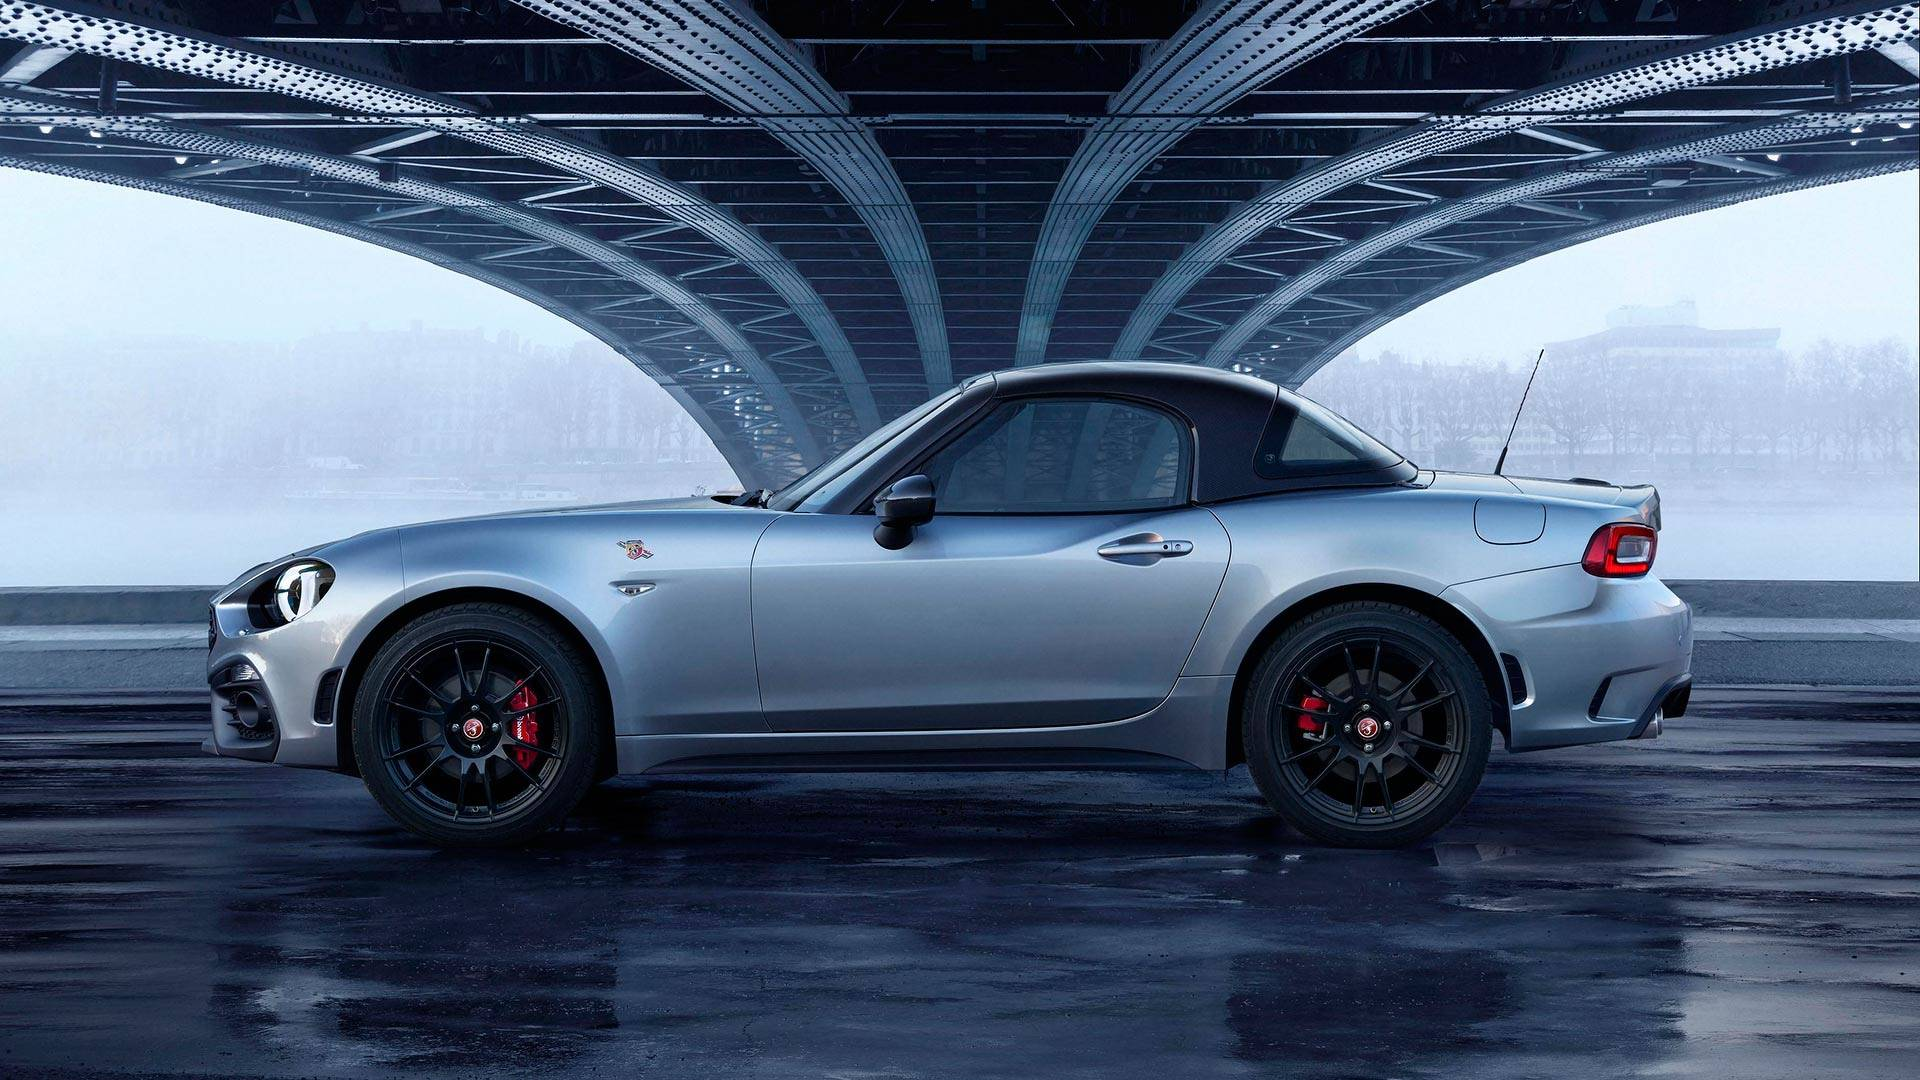 Fiat Reveals Abarth 124 Gt With Carbon Fiber Roof Ahead Of